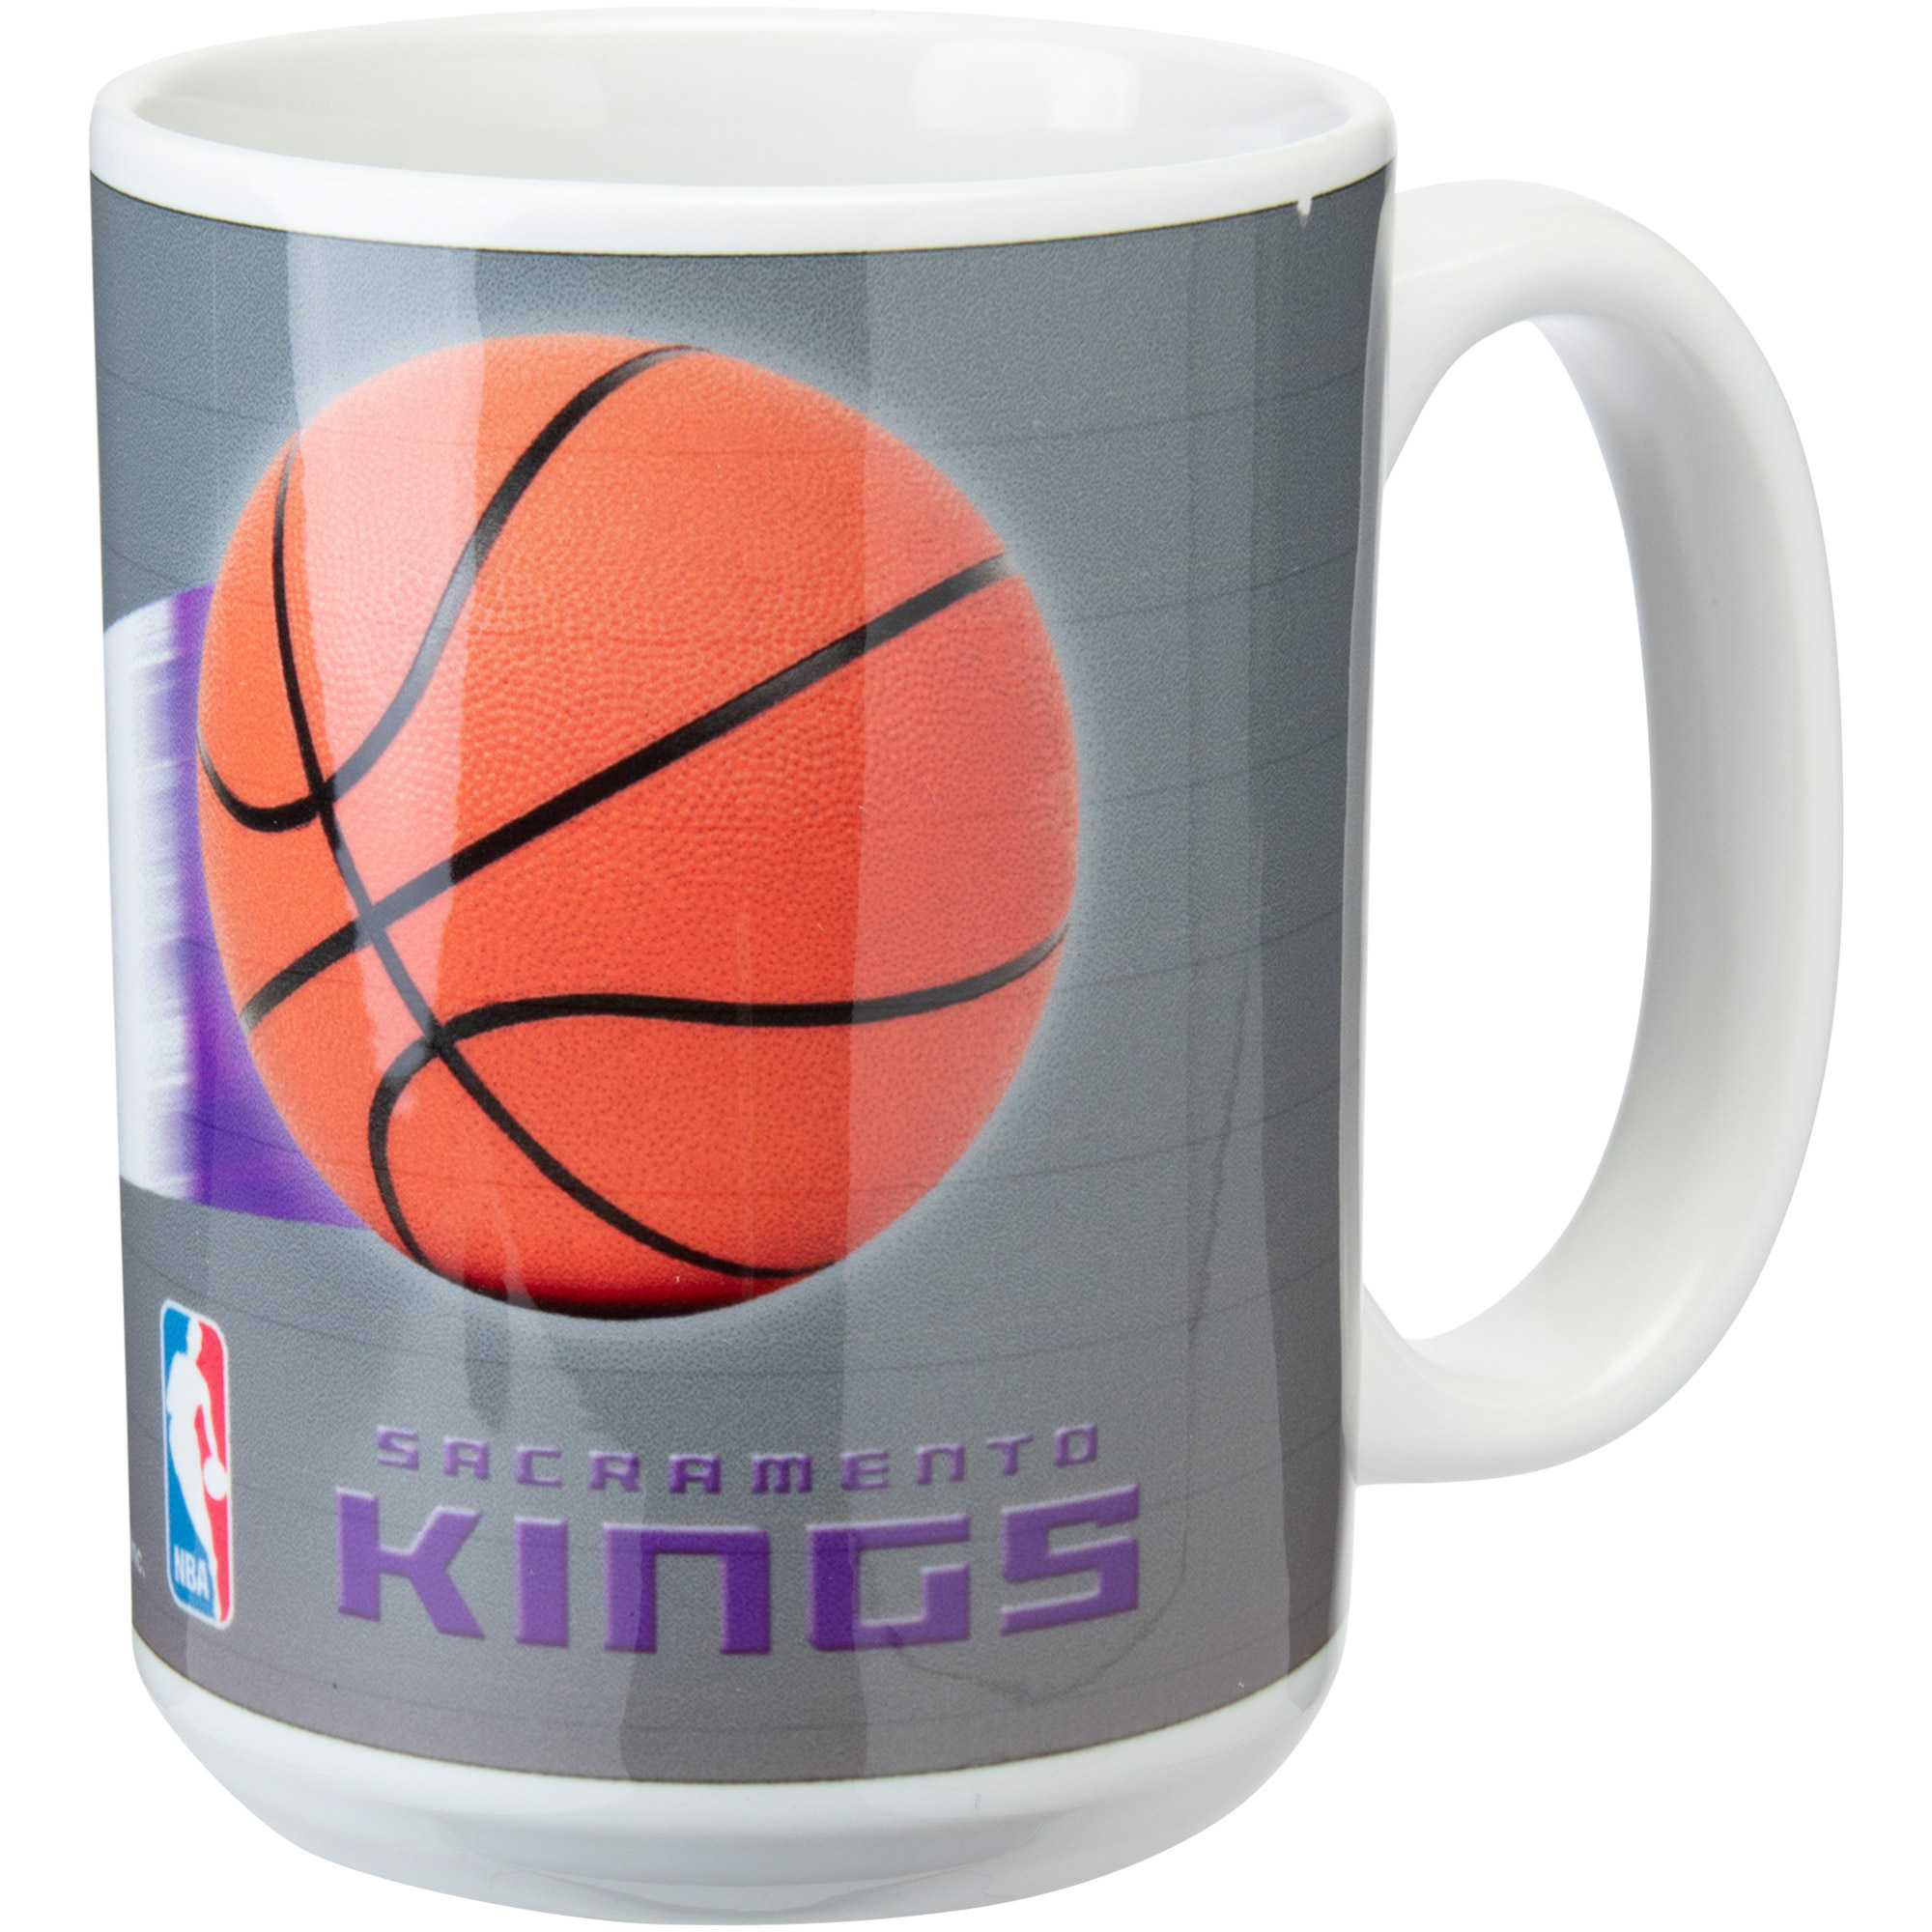 Sacramento Kings 15oz. Team 3D Graphic Mug - No Size